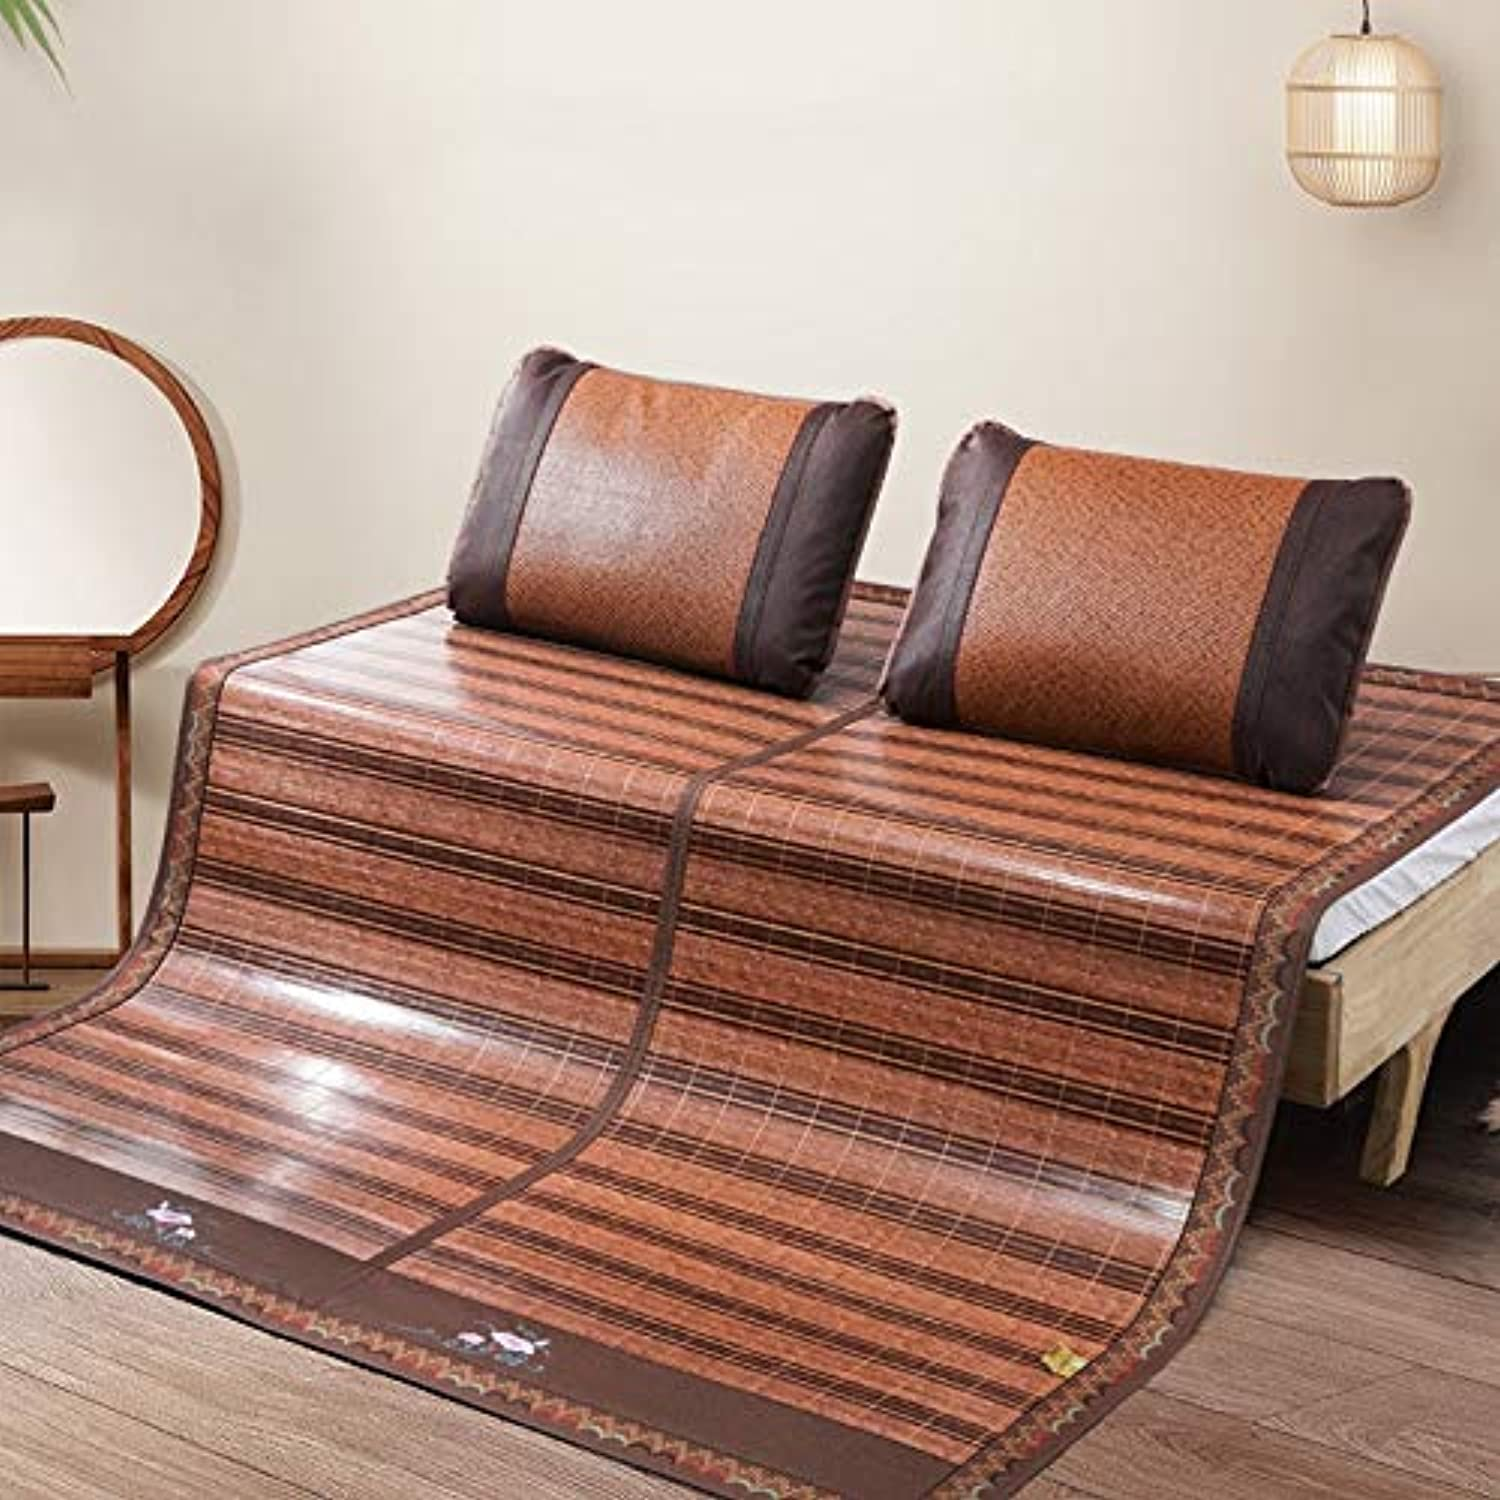 Mattress - Summer Bamboo Mat, Mat Folding Double-Sided Bamboo Mat Rattan Seats, One-seat Dual-use, Smooth and Stab-Free (Size   1.8x2m 70.9inx 78.7in)